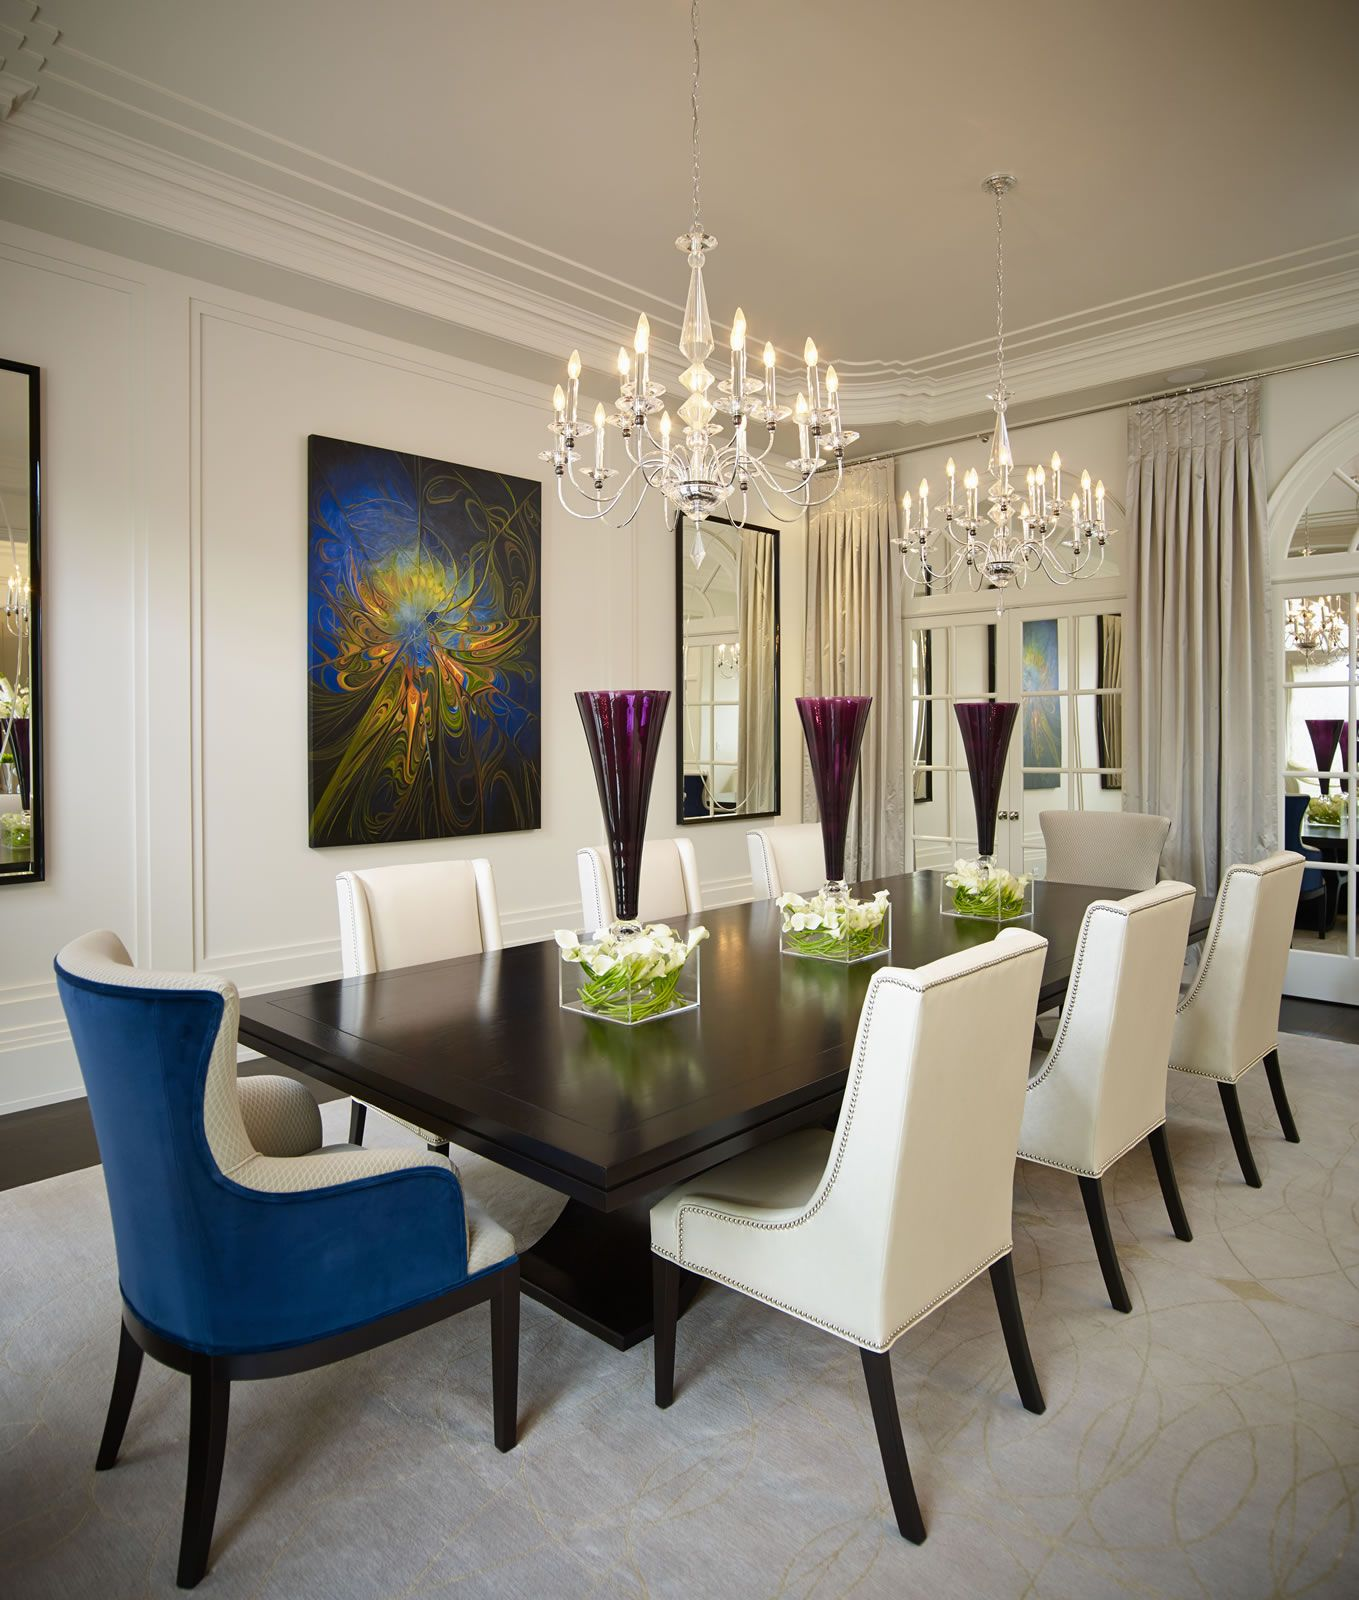 This Grand Residence Is Situated On The Picturesque Lakeshore Road Of Contemporary Interior Design Living Room Elegant Dining Room Contemporary Interior Design